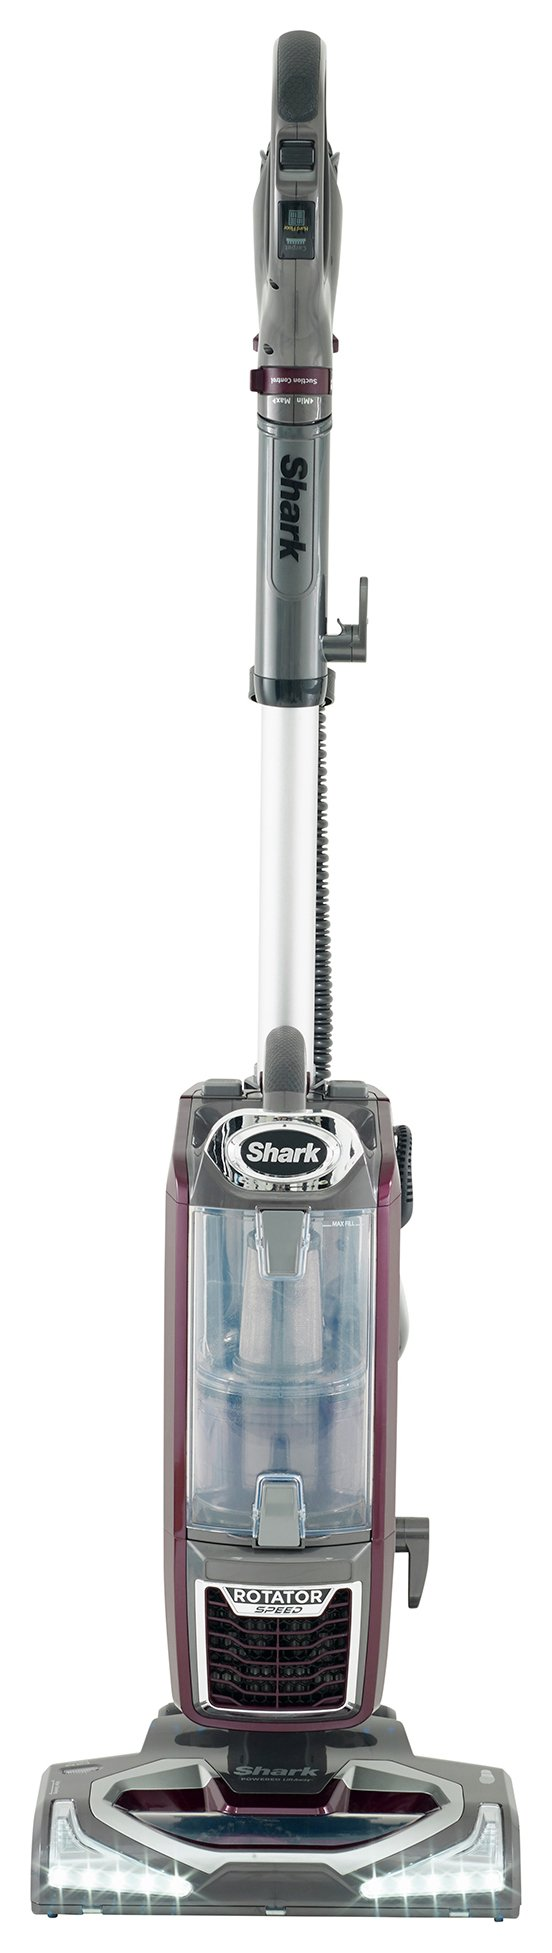 shark-nv680ukt-powered-lift-away-vacuum-cleaner